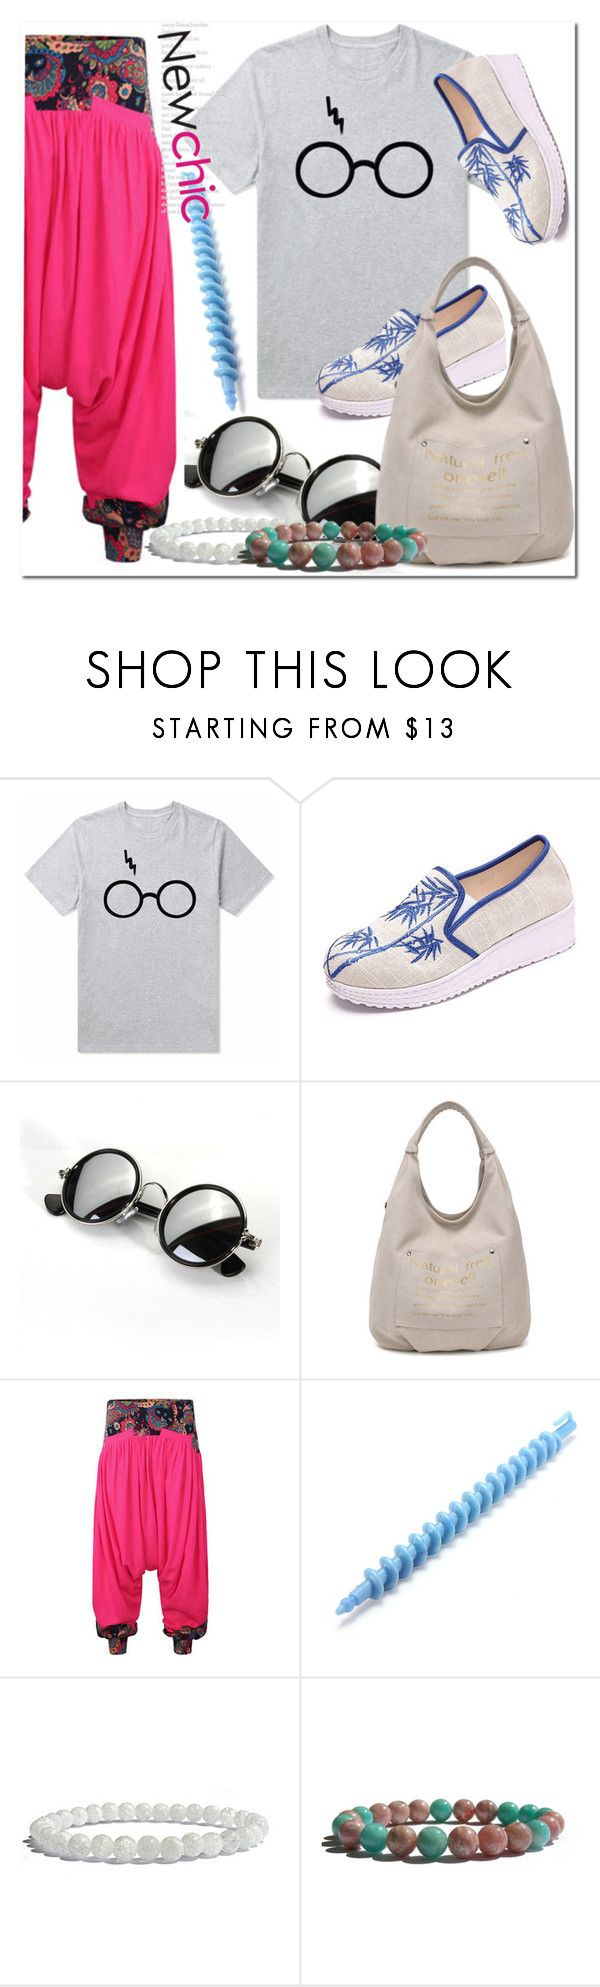 """Без названия #2520"" by ilona-828 ❤ liked on Polyvore featuring polyvoreeditorial and Zenstore"